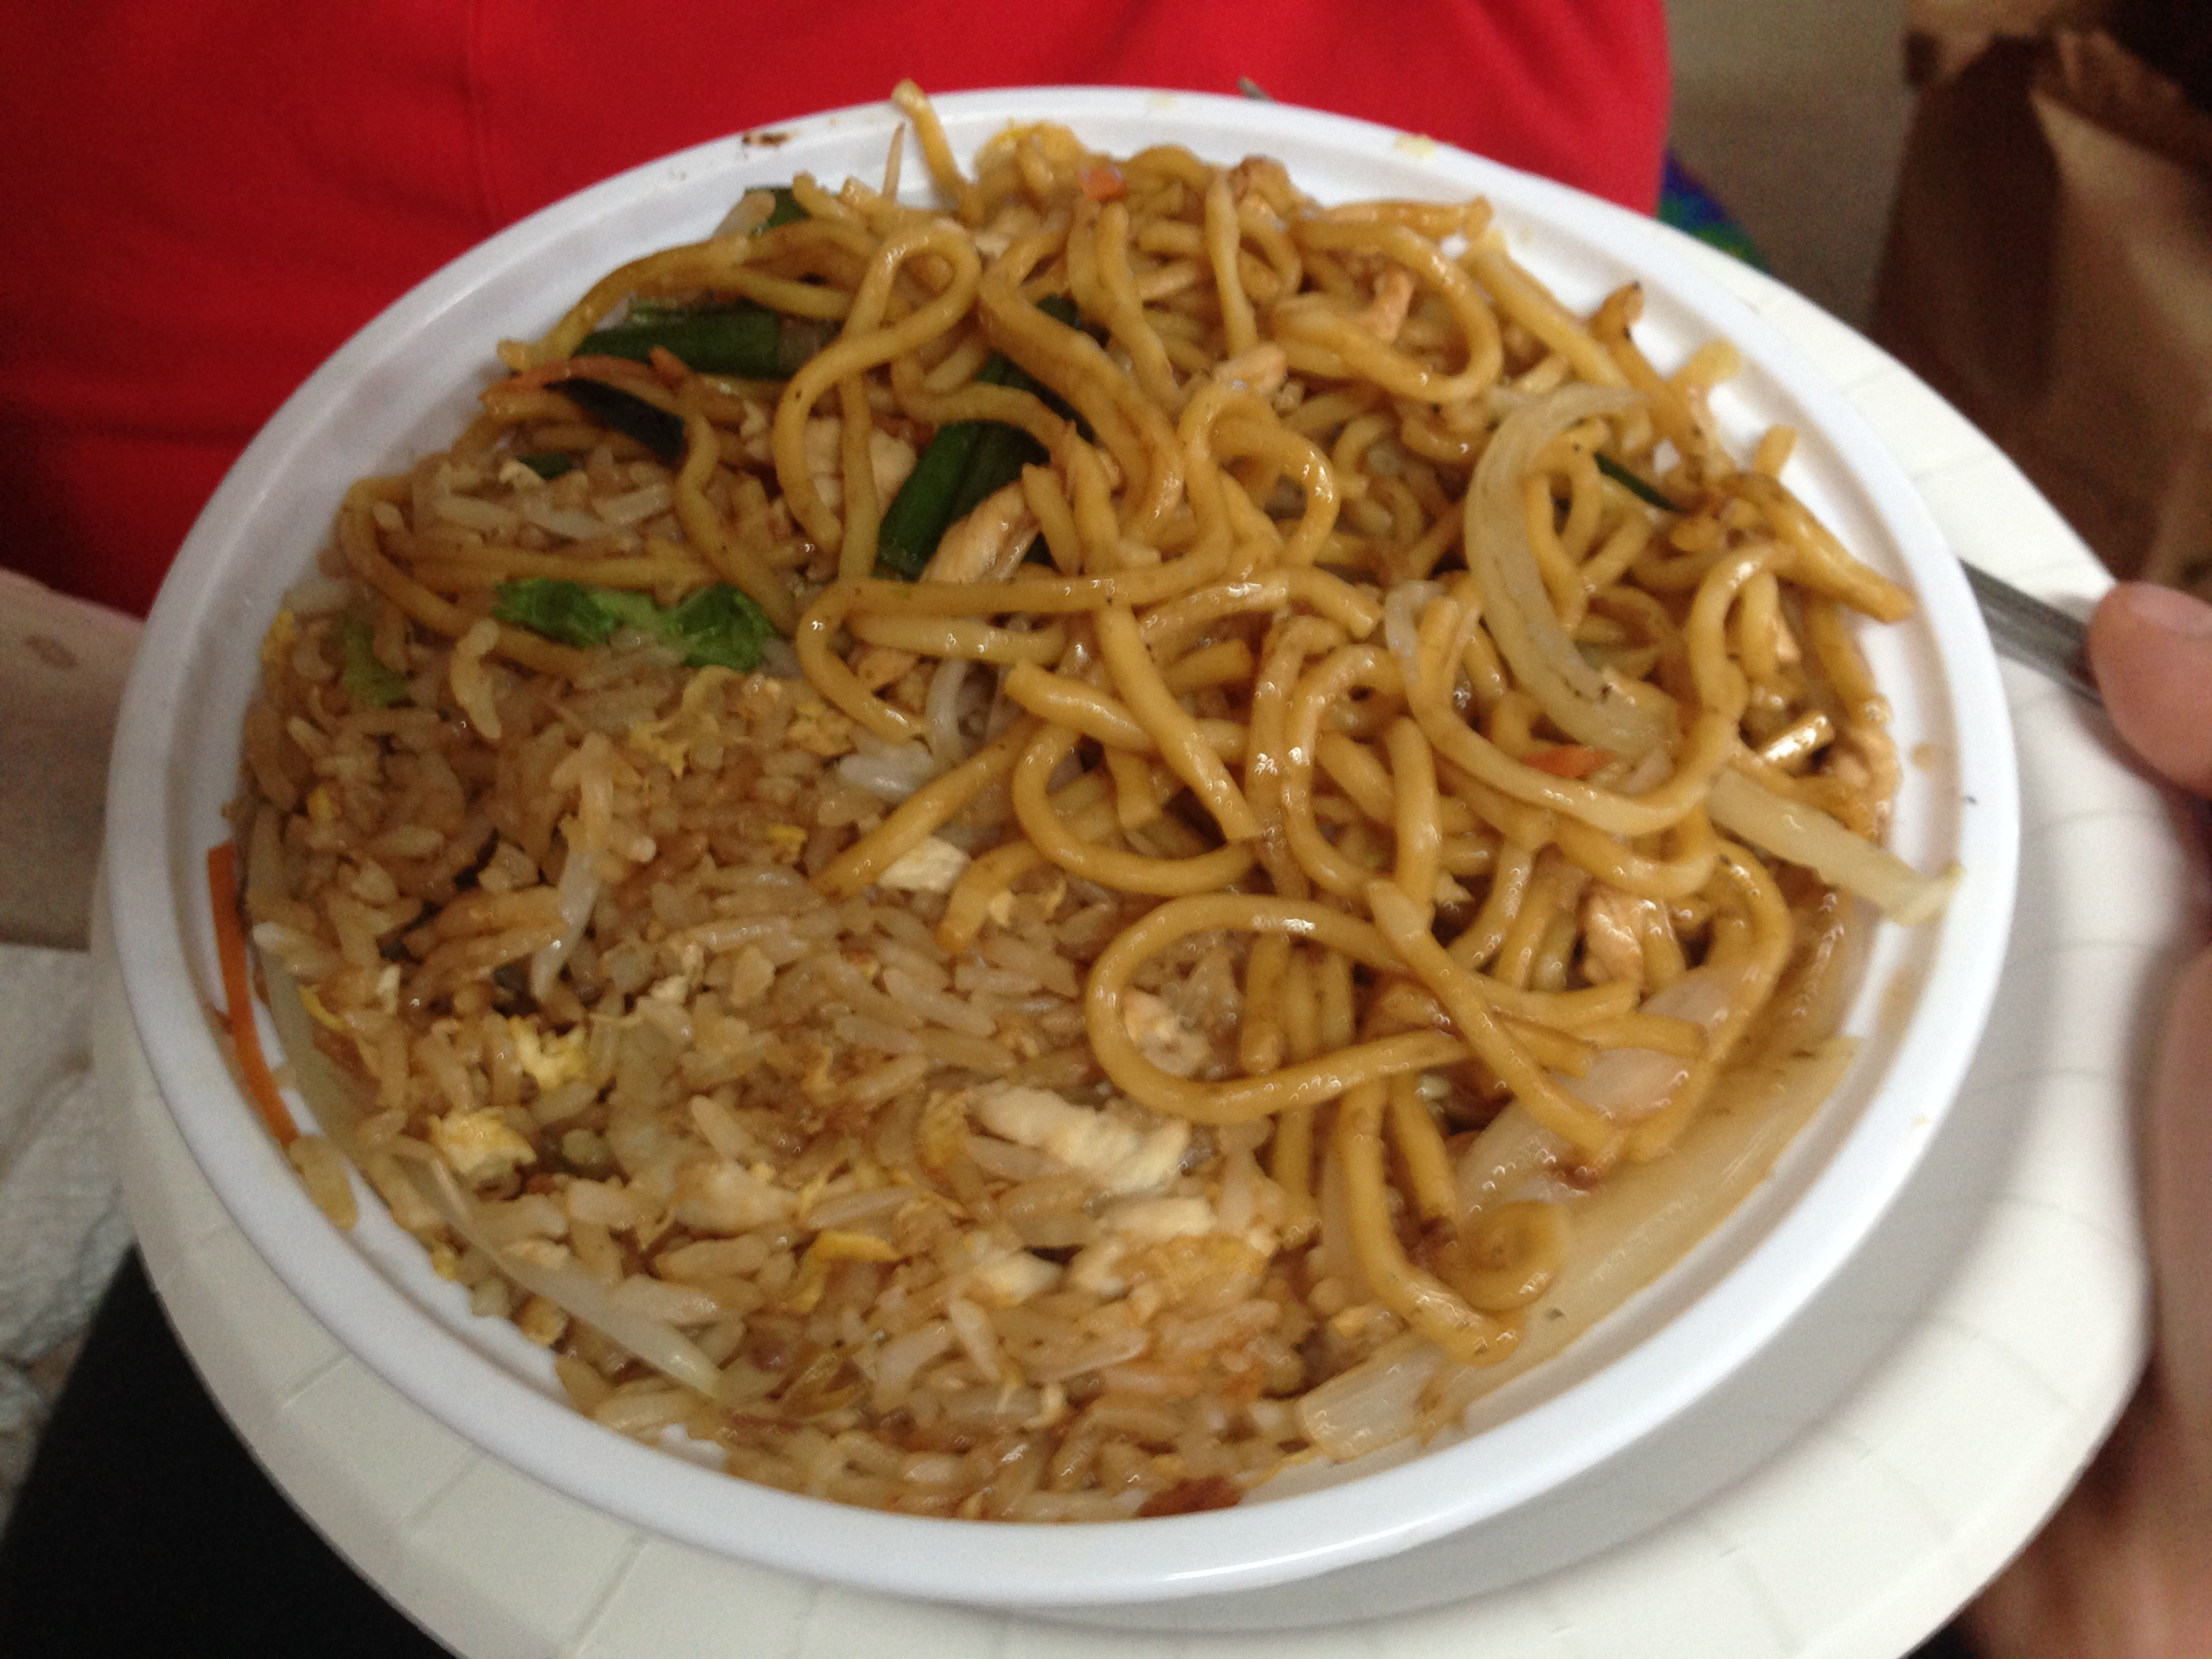 Lo mein hannah mcclung orient house chicken lo mein lunch special forumfinder Images